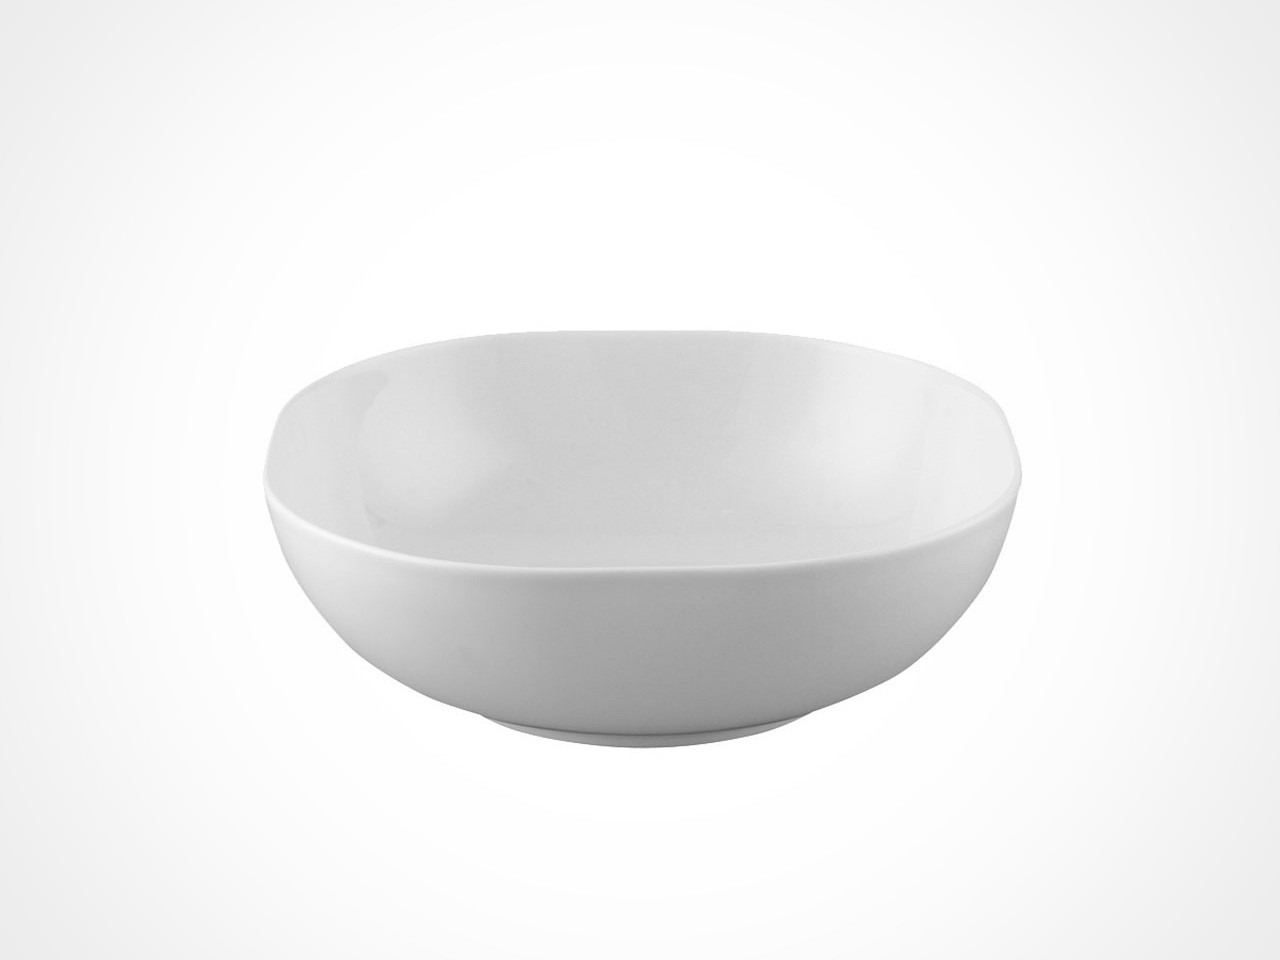 Rosenthal Moon White cereal bowl on white background.